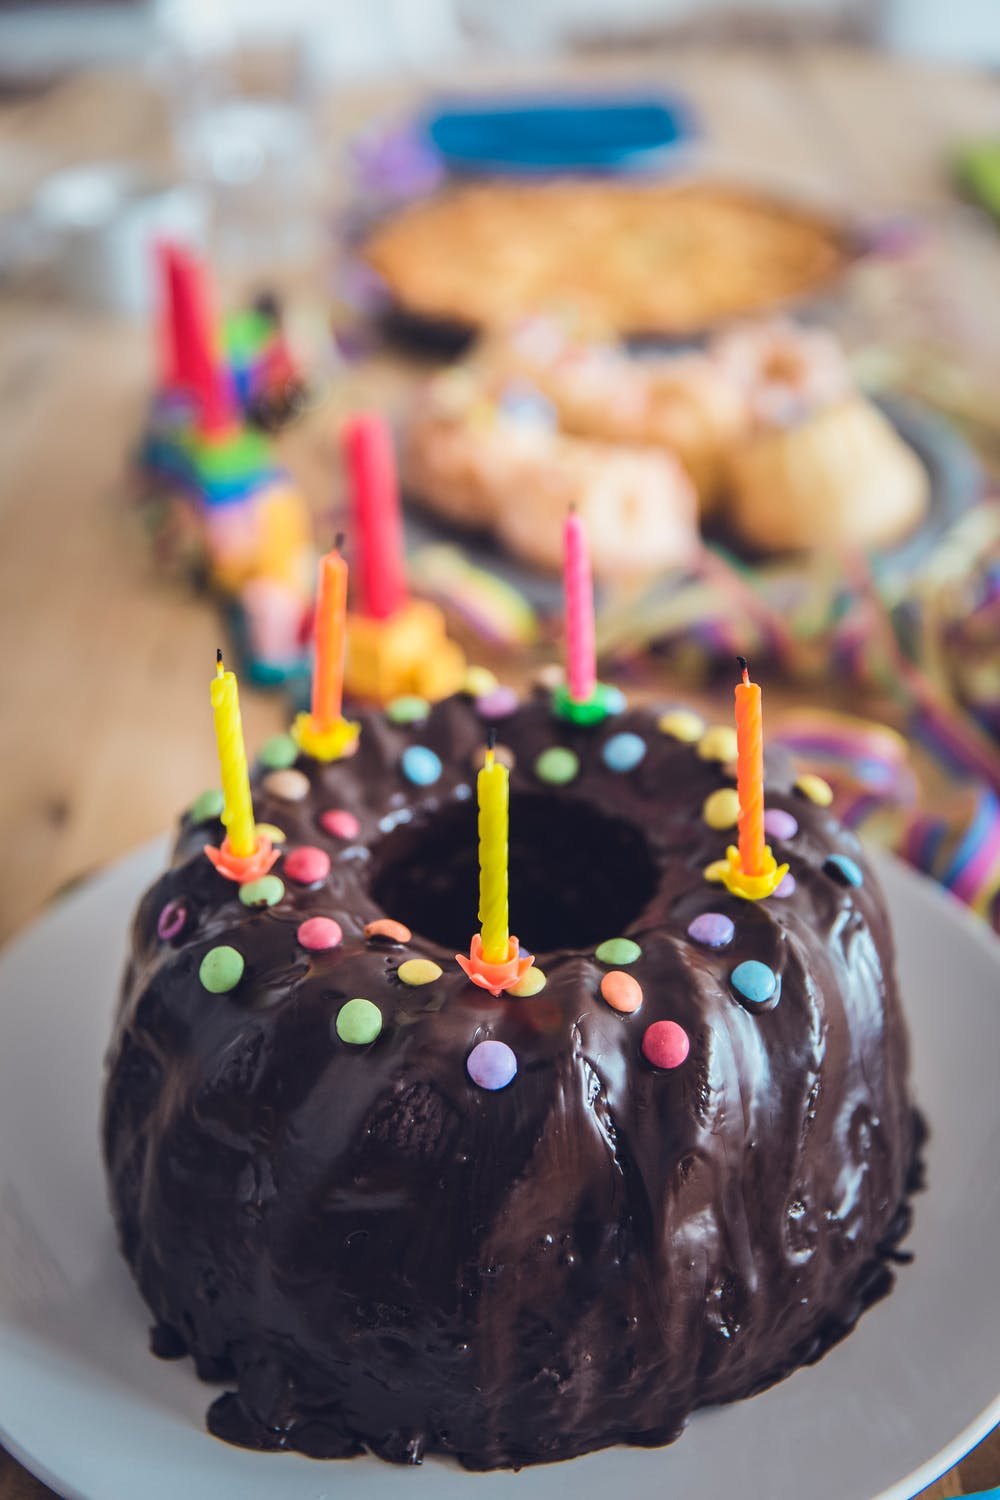 Reasons To Not Host Your Next Child's Birthday Party At Home